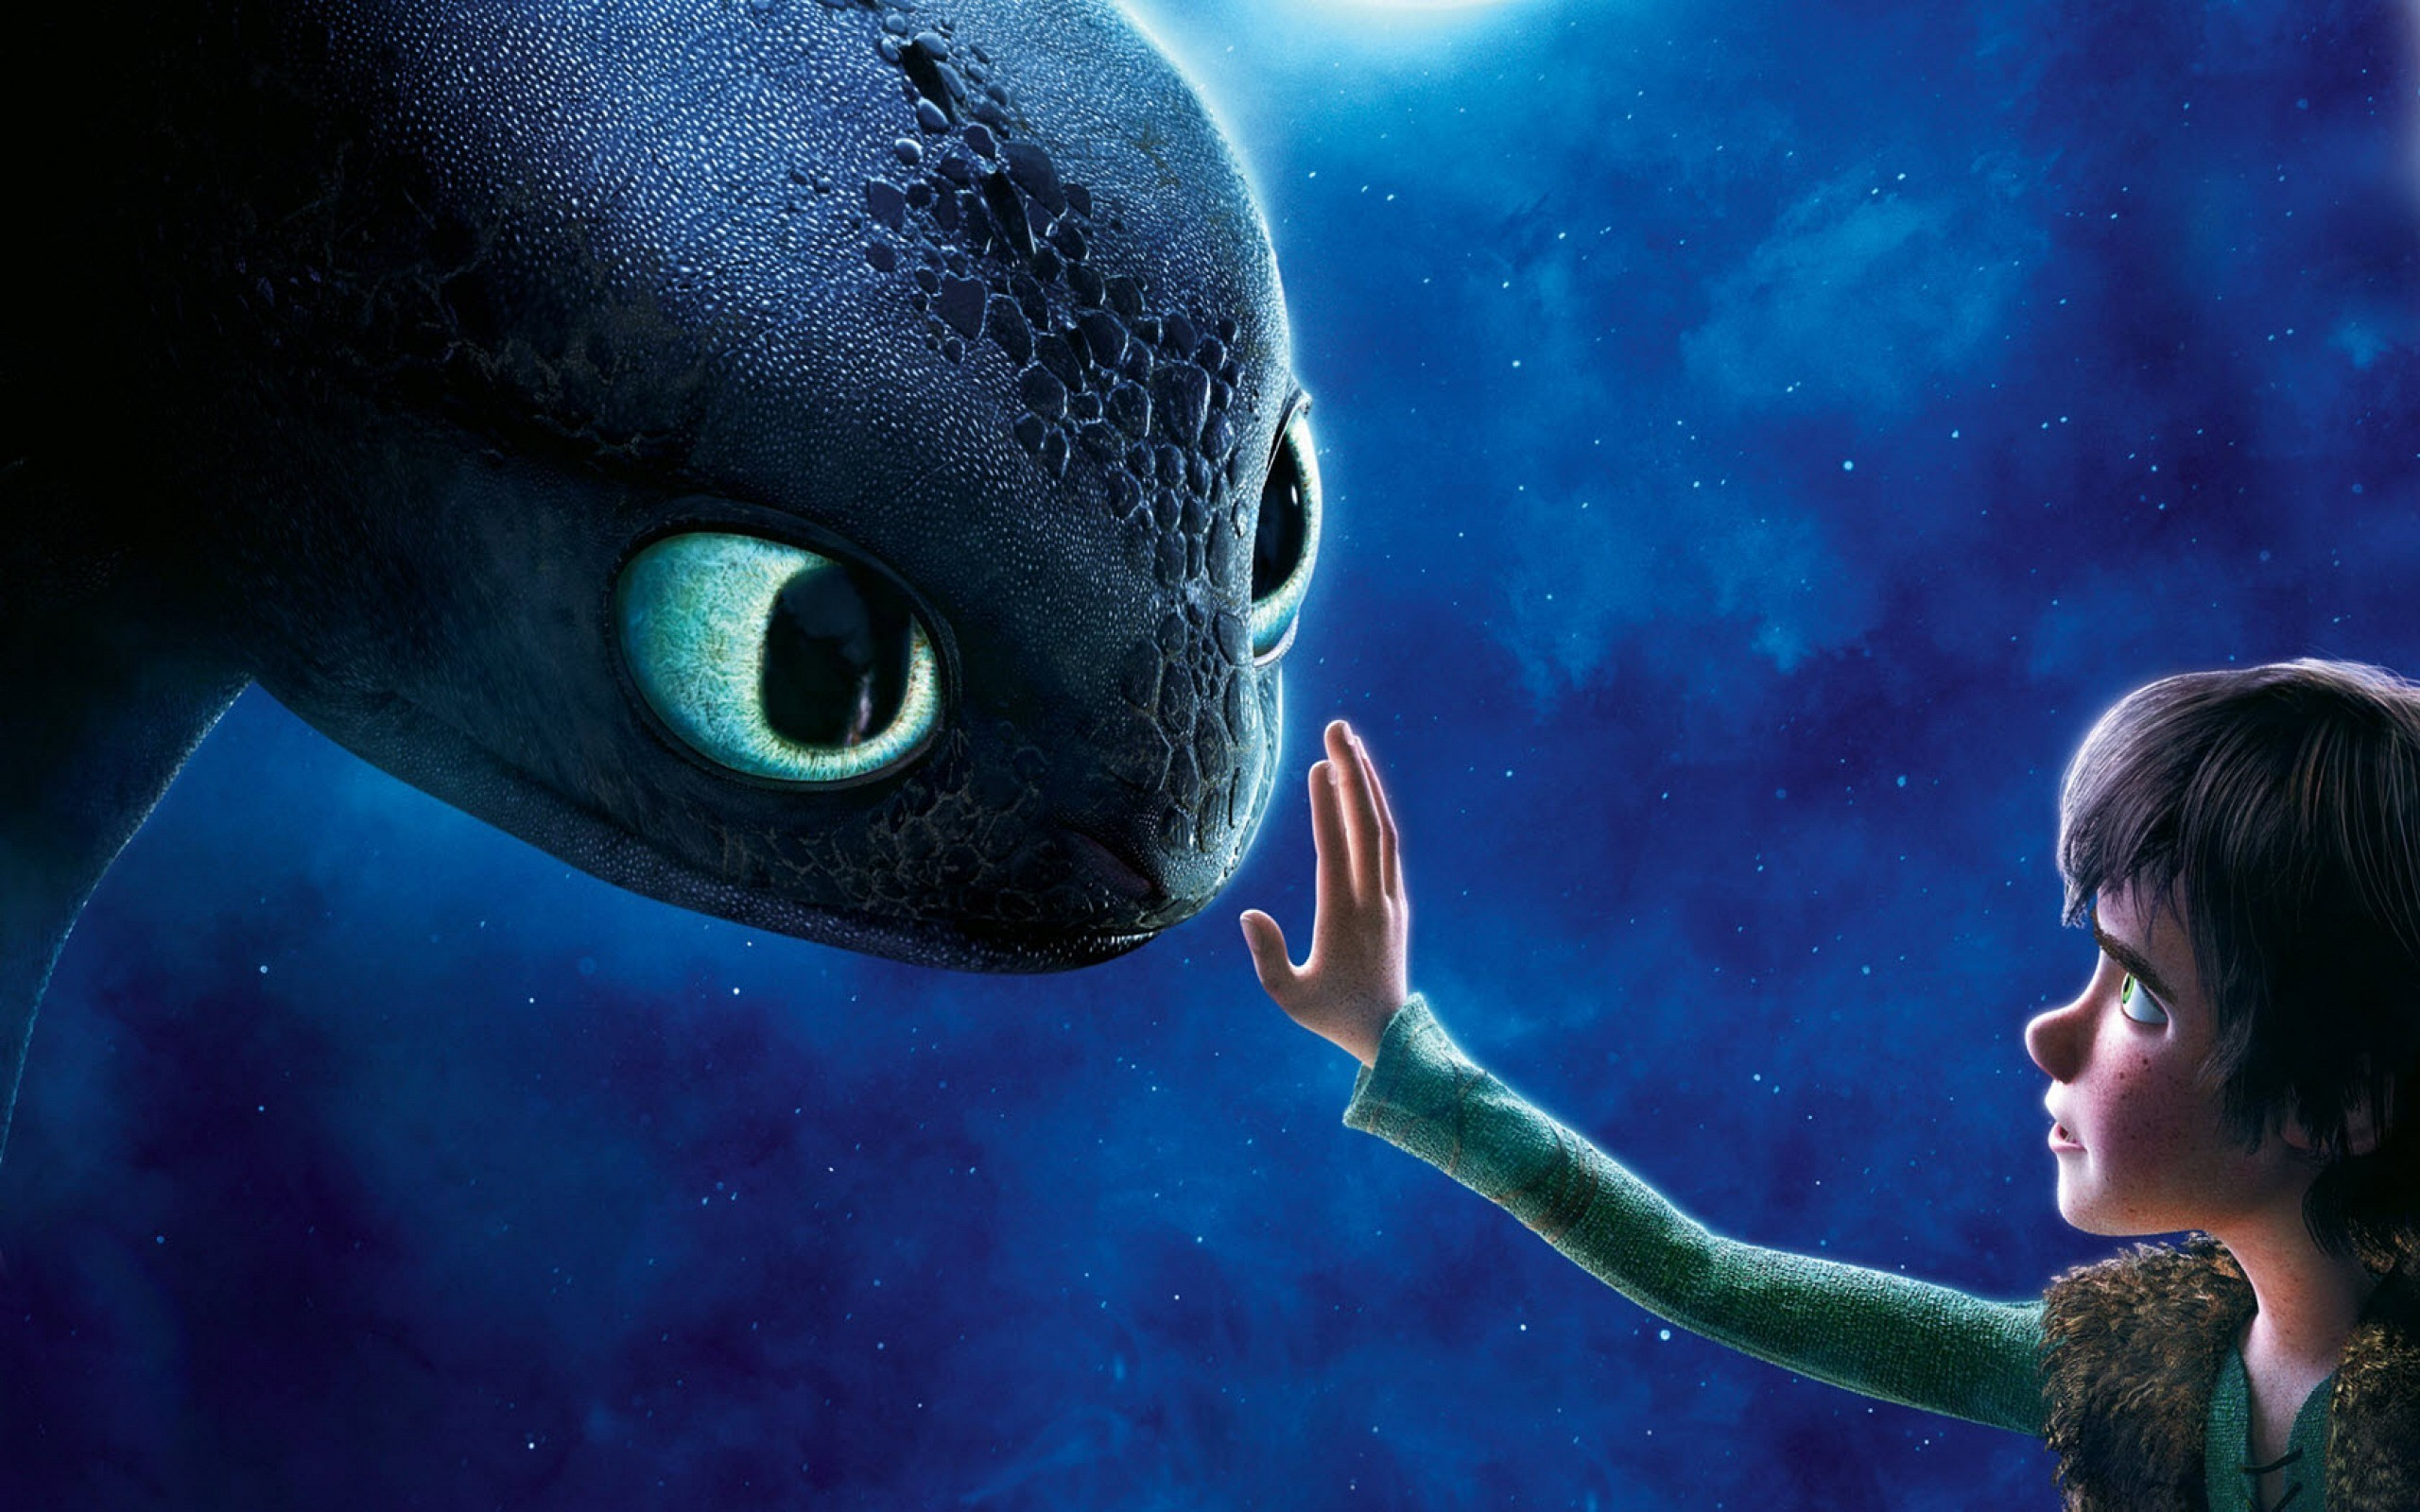 Toothless Wallpaper Hd 75 Images